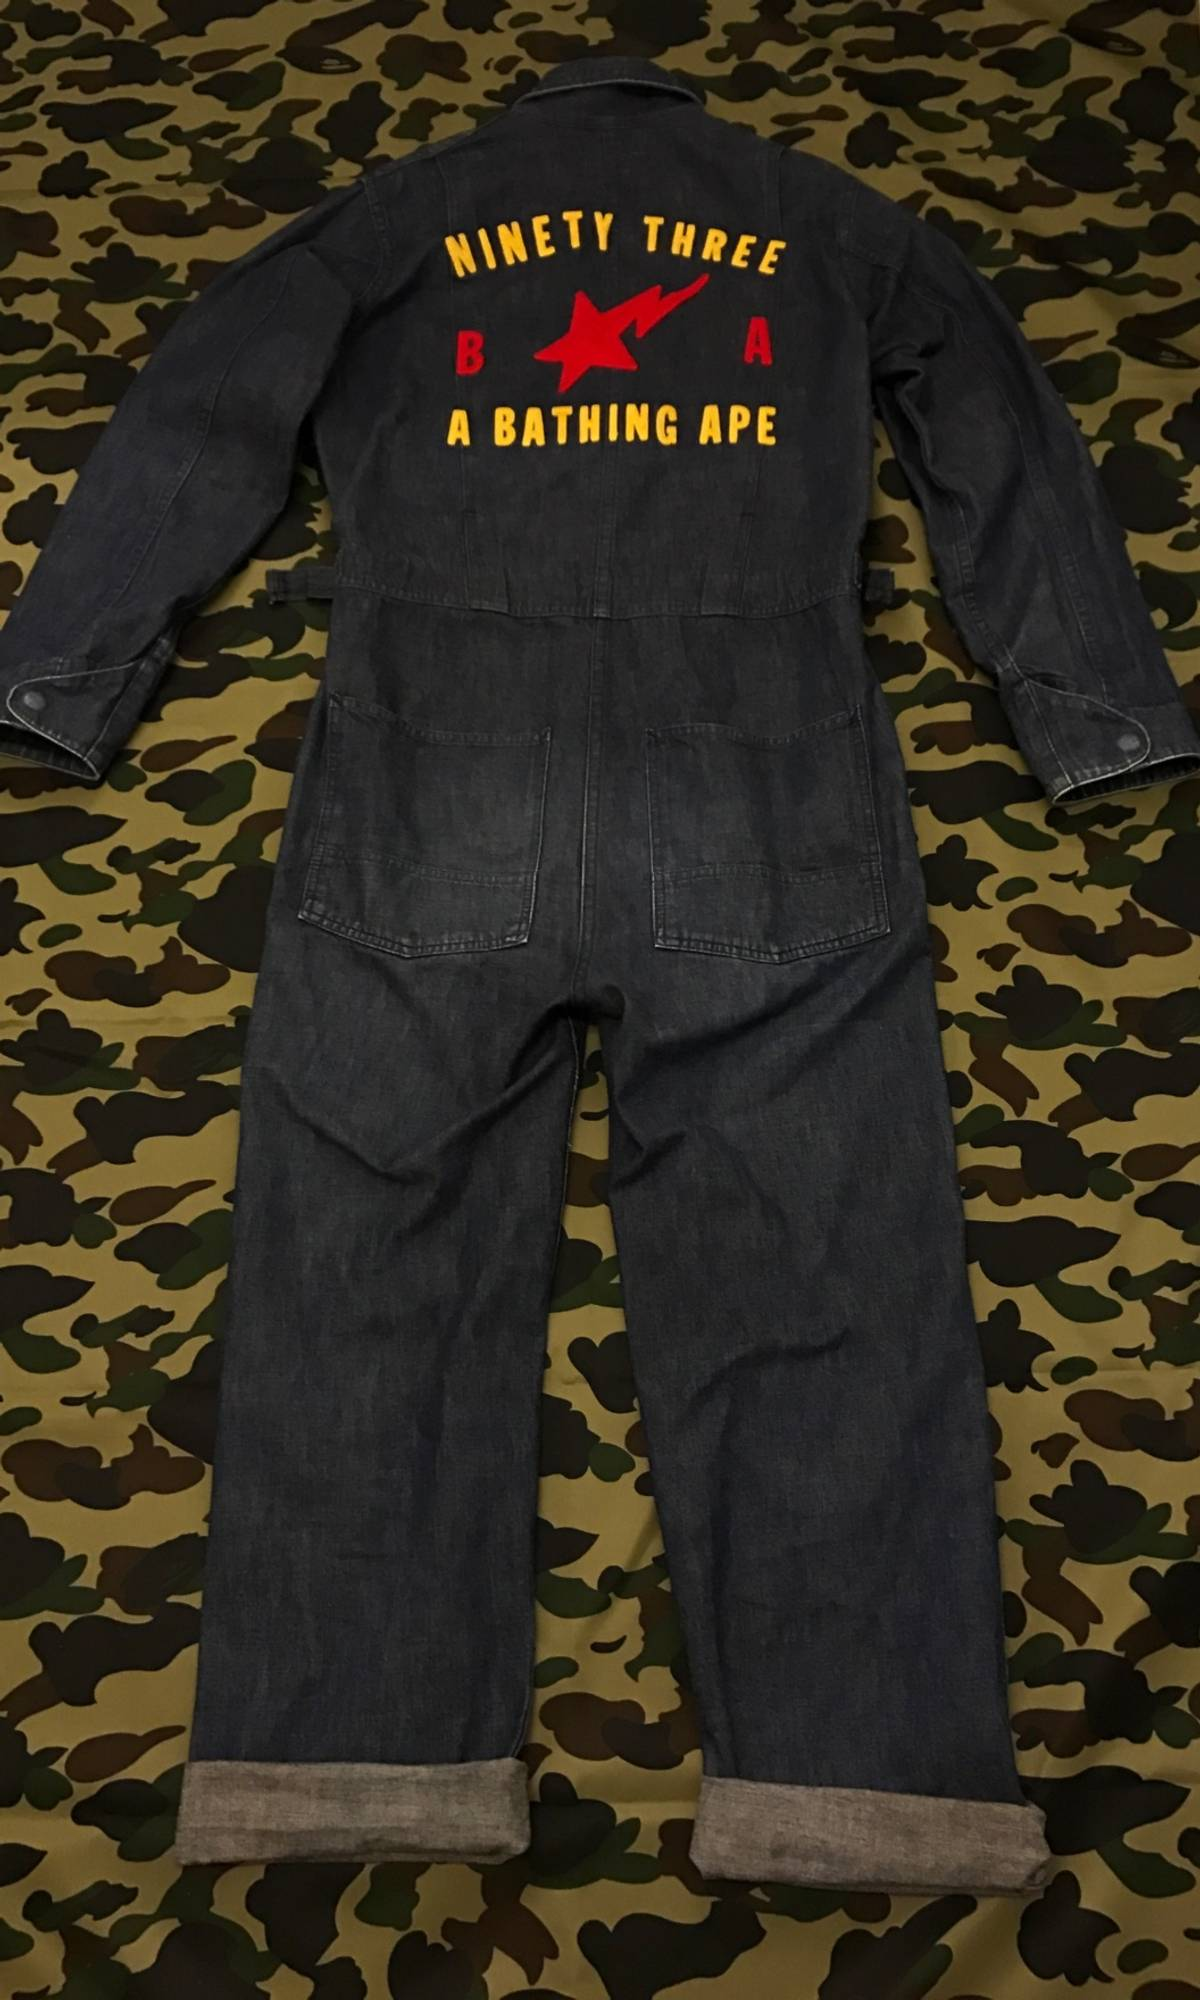 0a8ca0877f90 Bape A BATHING APE - Denim overall Size 32 - Overalls   Jumpsuits for Sale  - Grailed